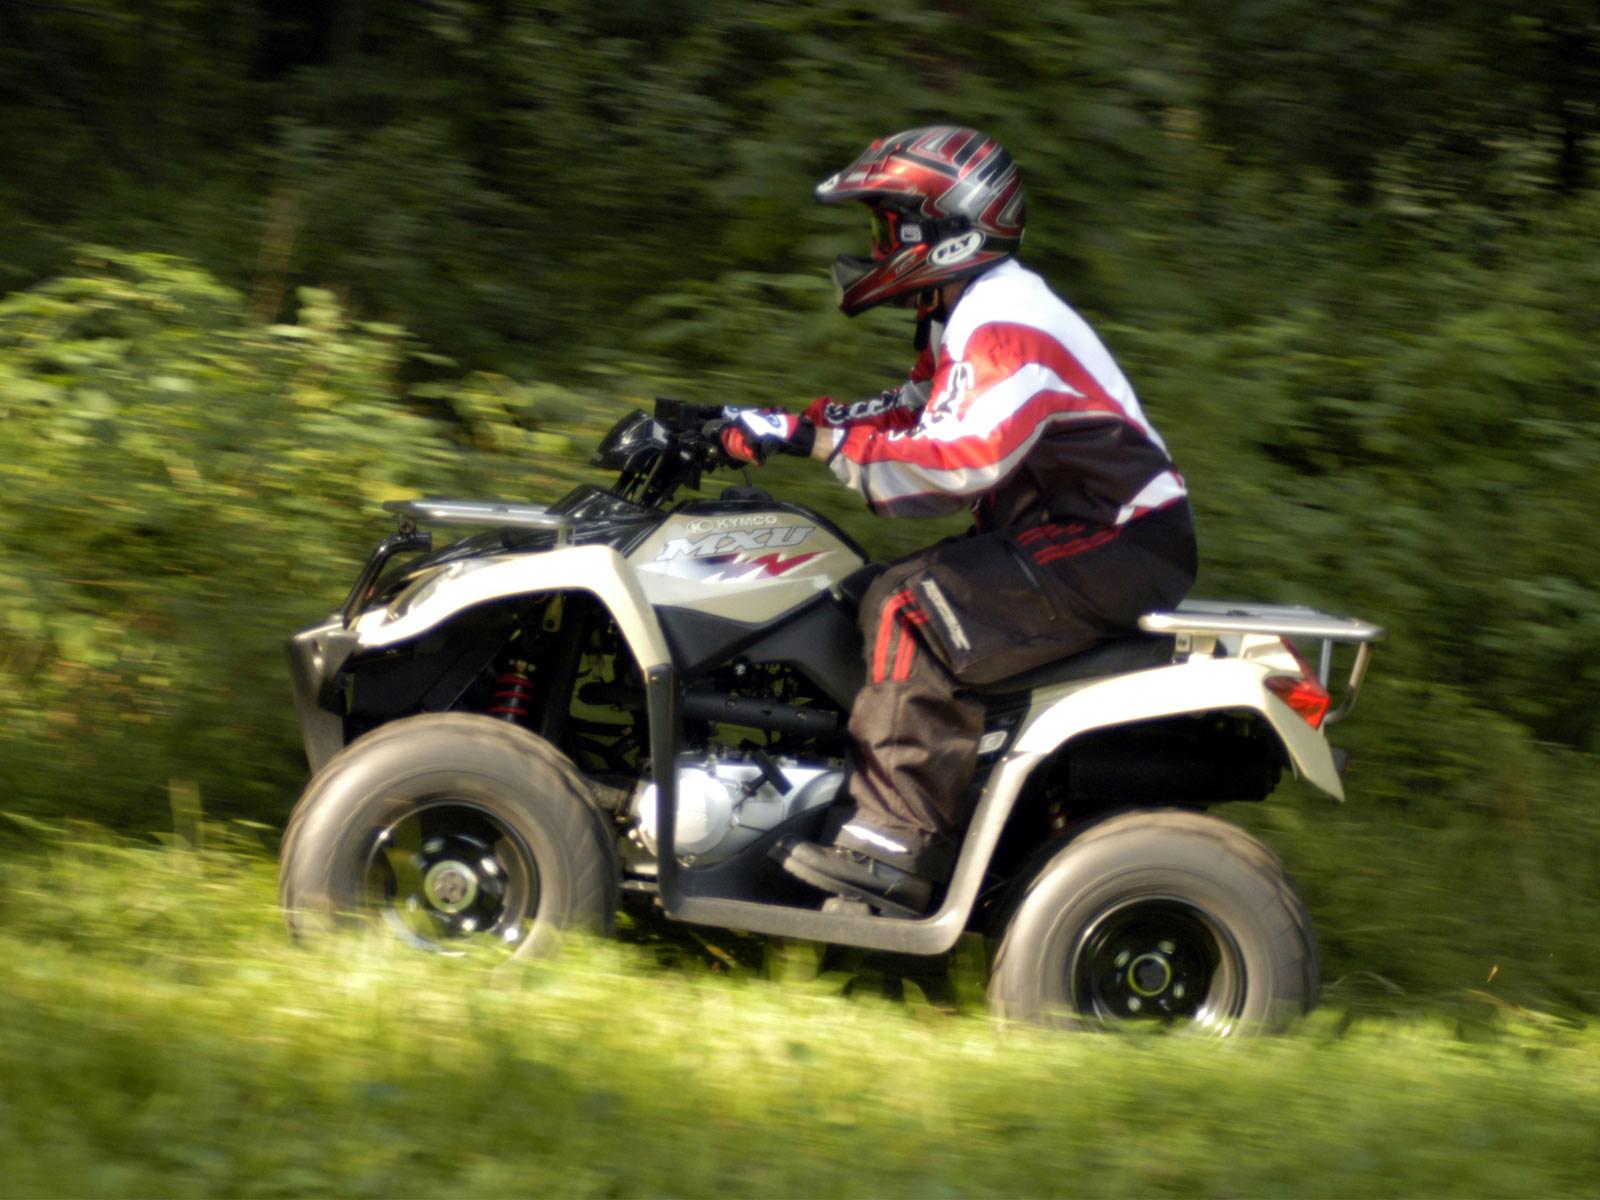 2008 kymco mongoose 300 atv pictures specifications. Black Bedroom Furniture Sets. Home Design Ideas